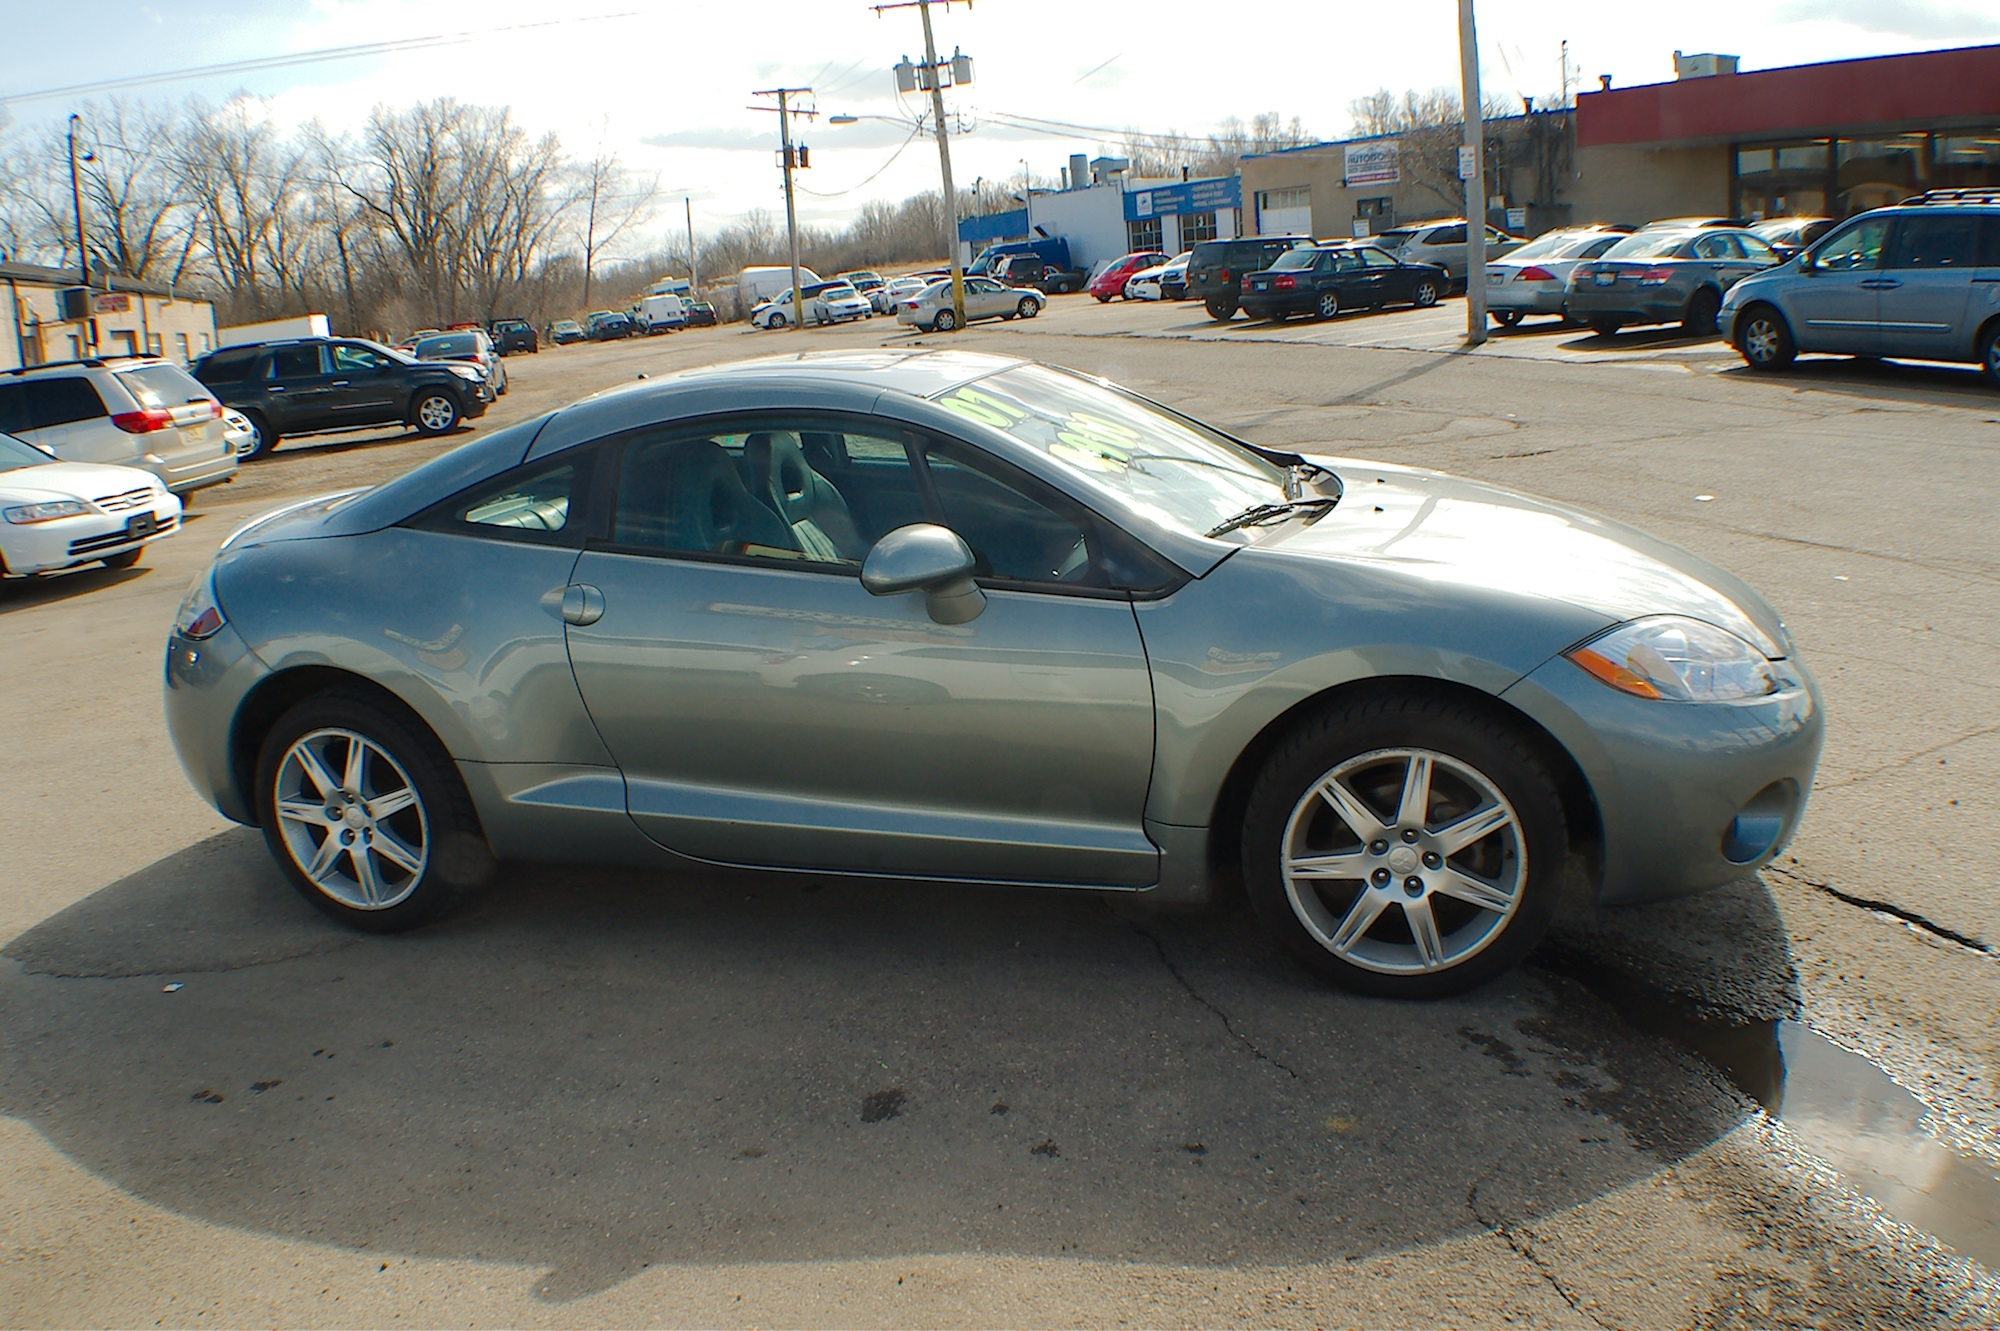 2007 Mitsubishi Eclipse SE Gray Special Edition Sale Bannockburn Barrington Beach Park